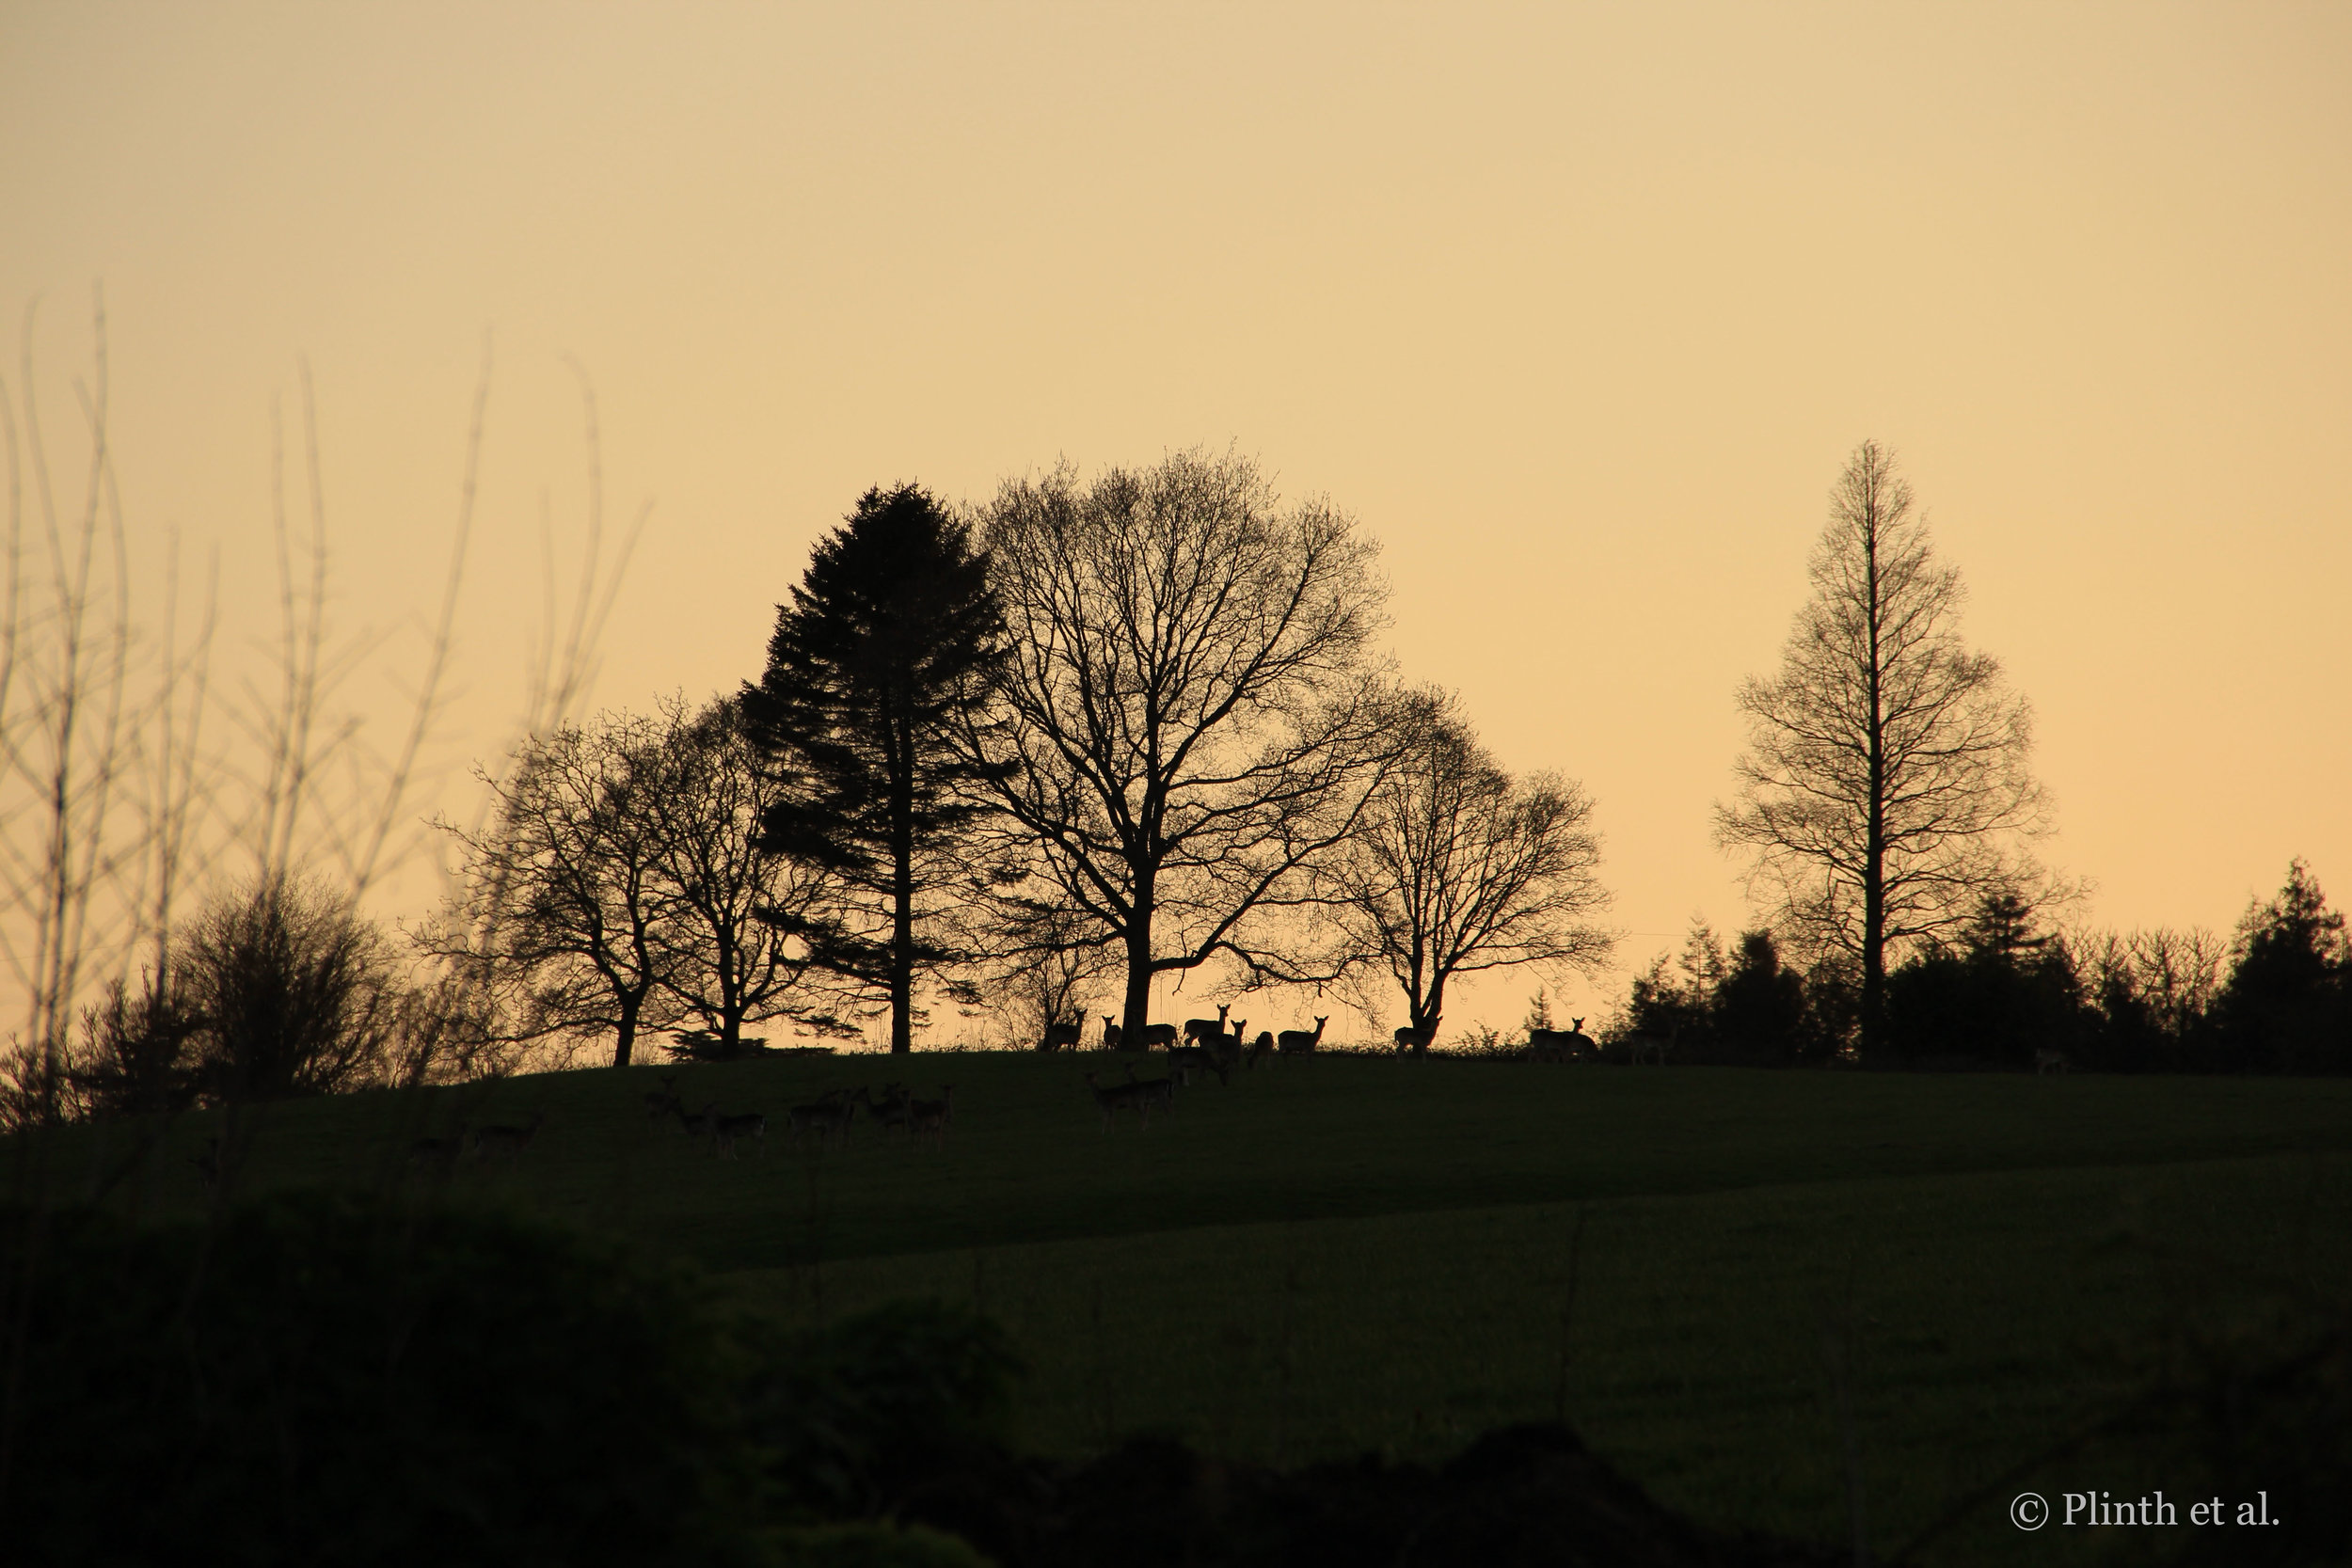 Winter silhouettes of trees and deer, Gravetye Manor, UK